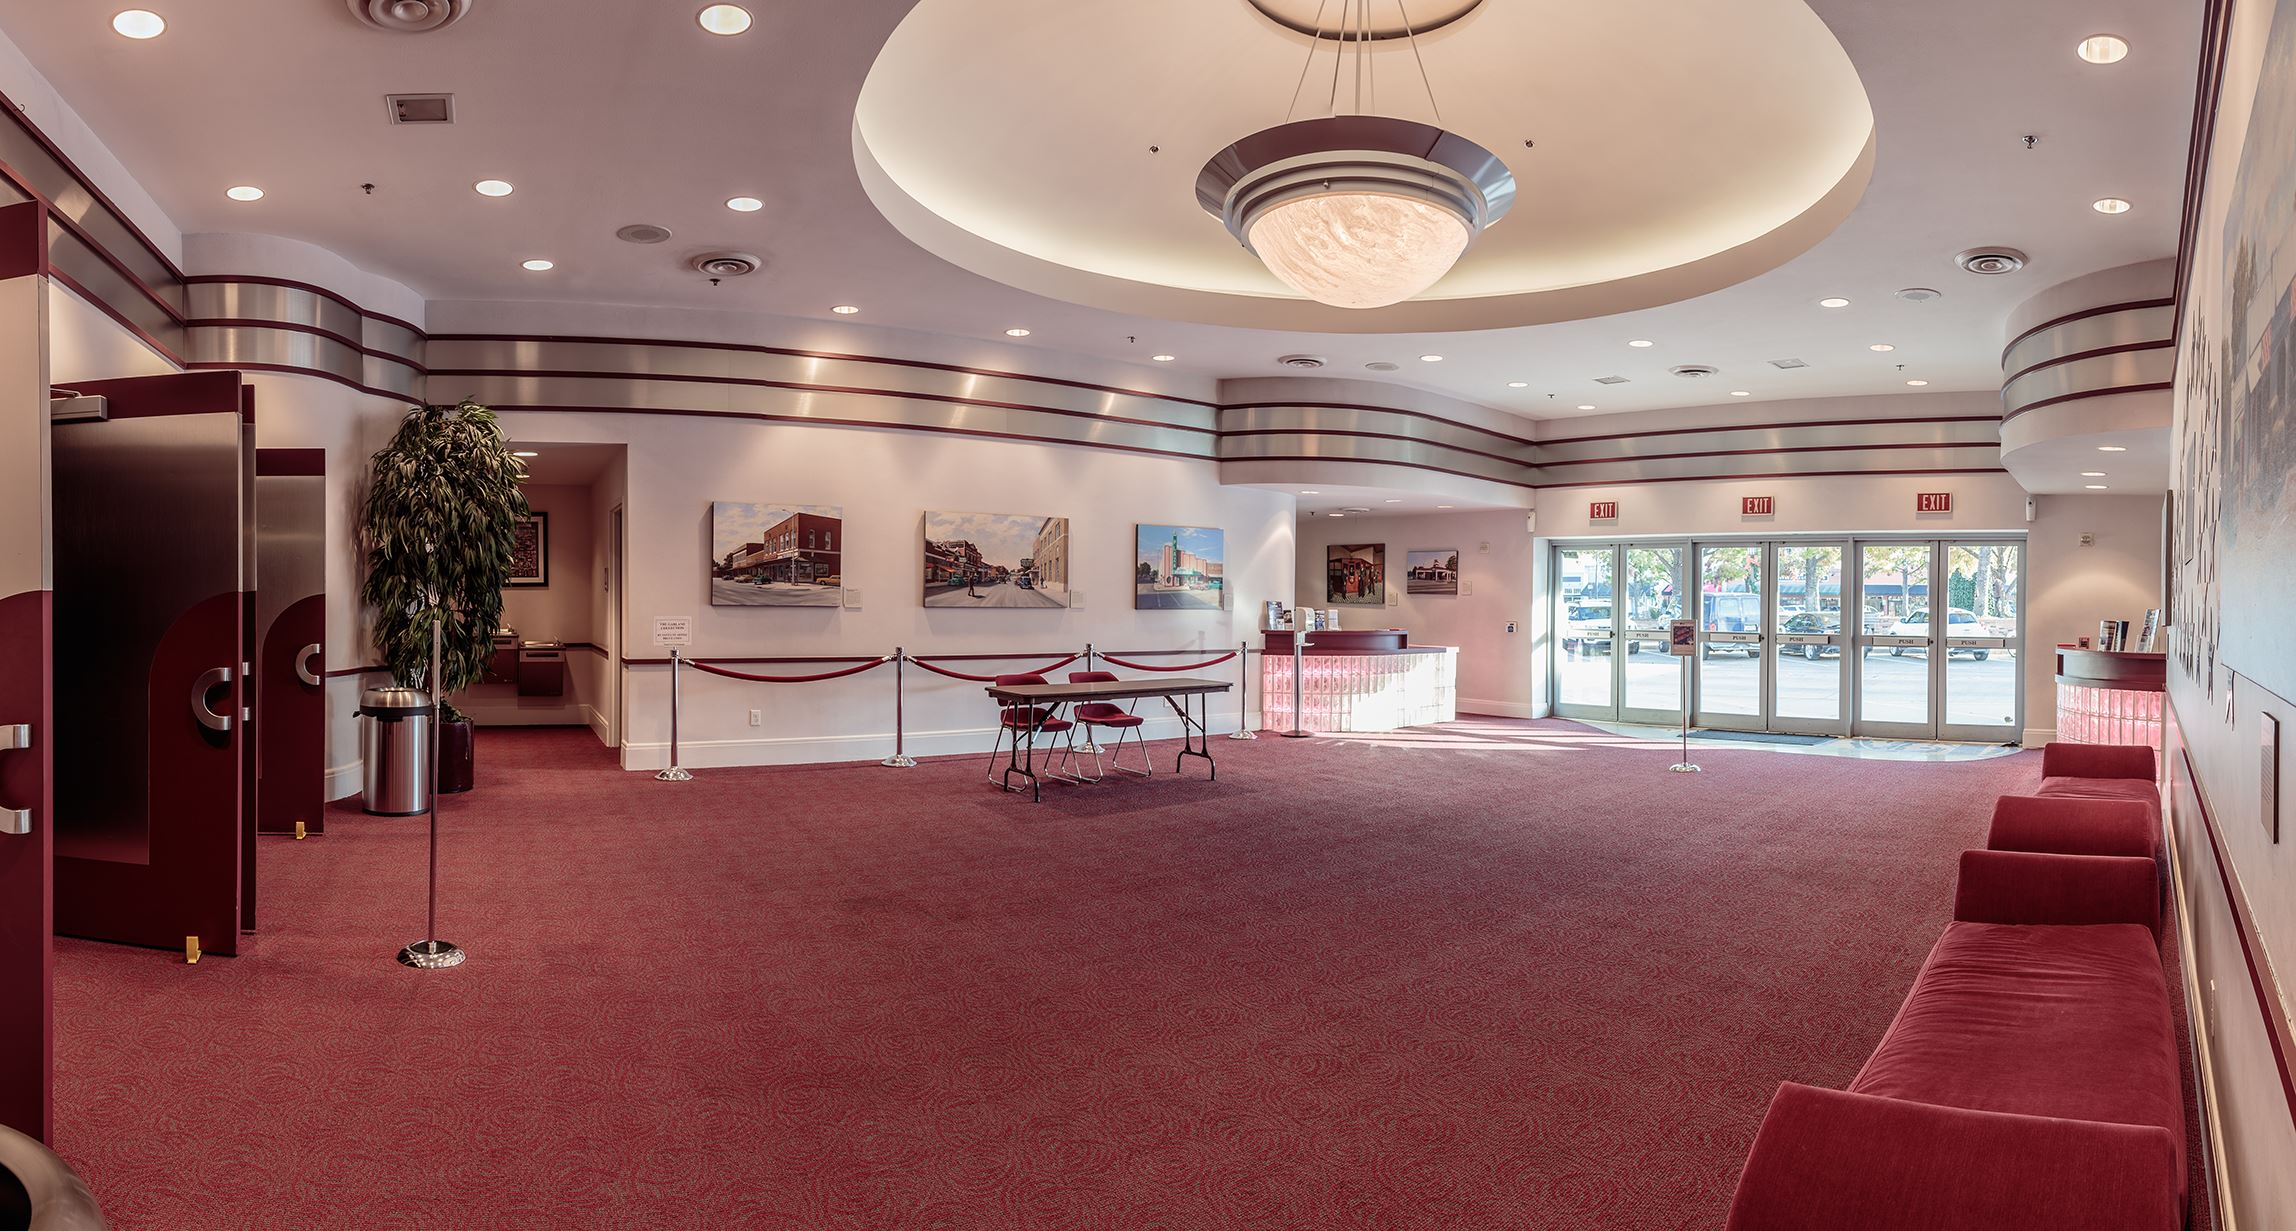 The Plaza Theatre lobby